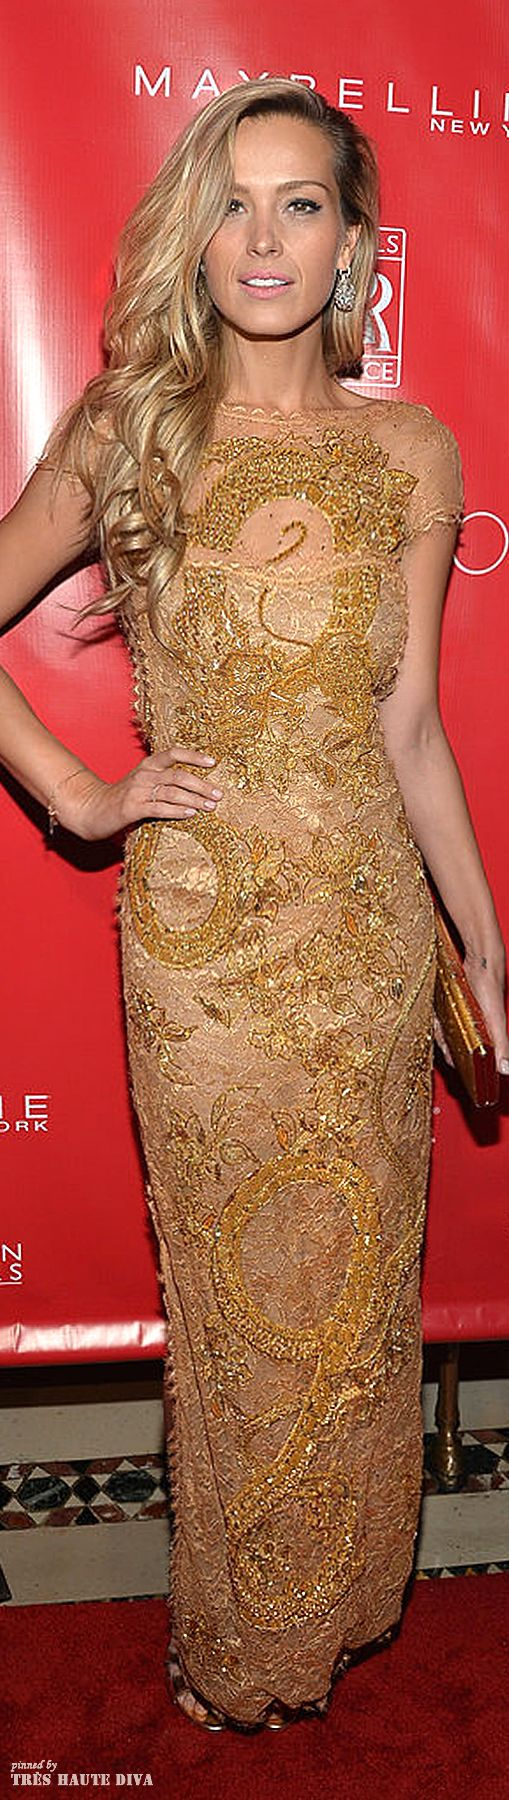 Petra Nemcova looks stunning in this golden long embroidered gown